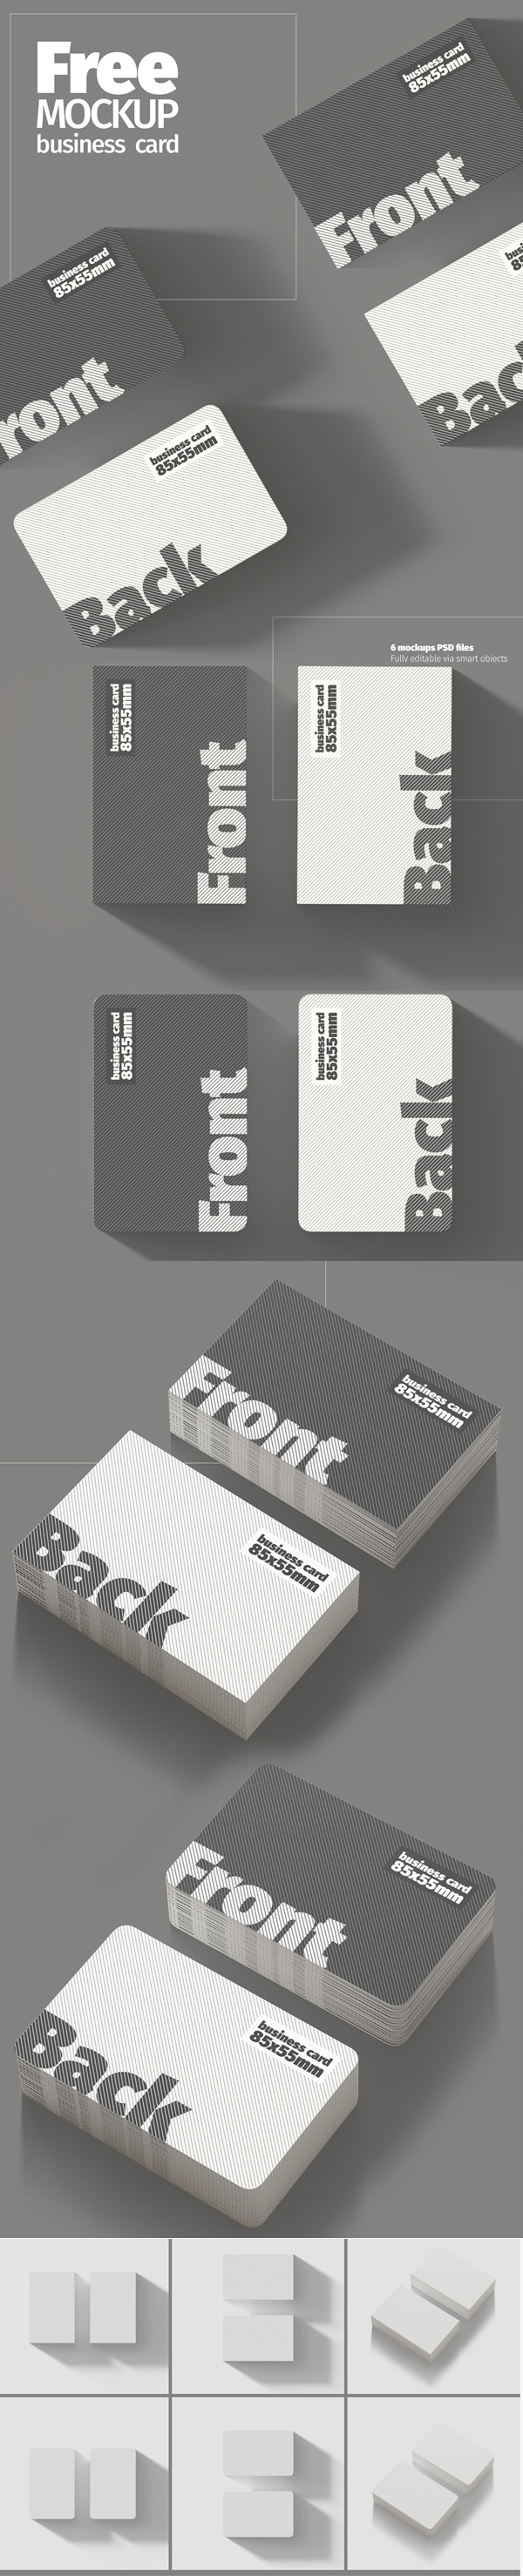 Free High Quality Business Card Mockup Template